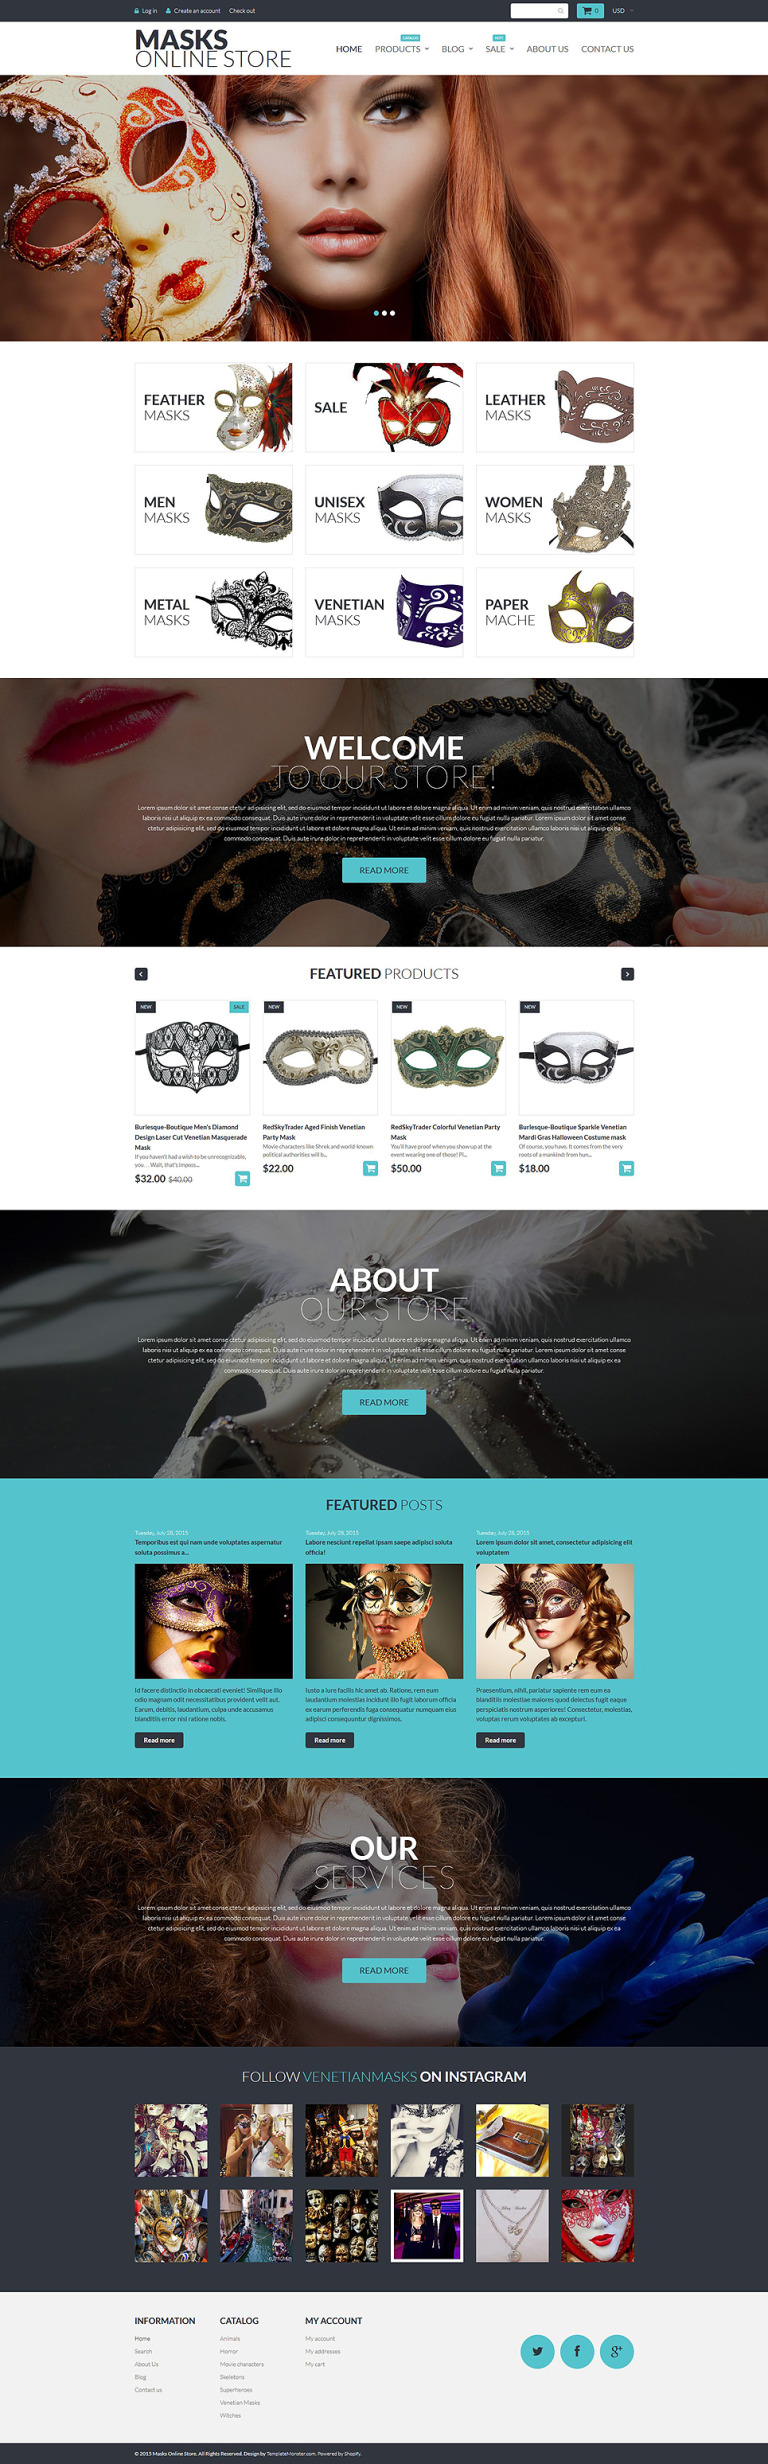 Masks Online Store Shopify Theme New Screenshots BIG